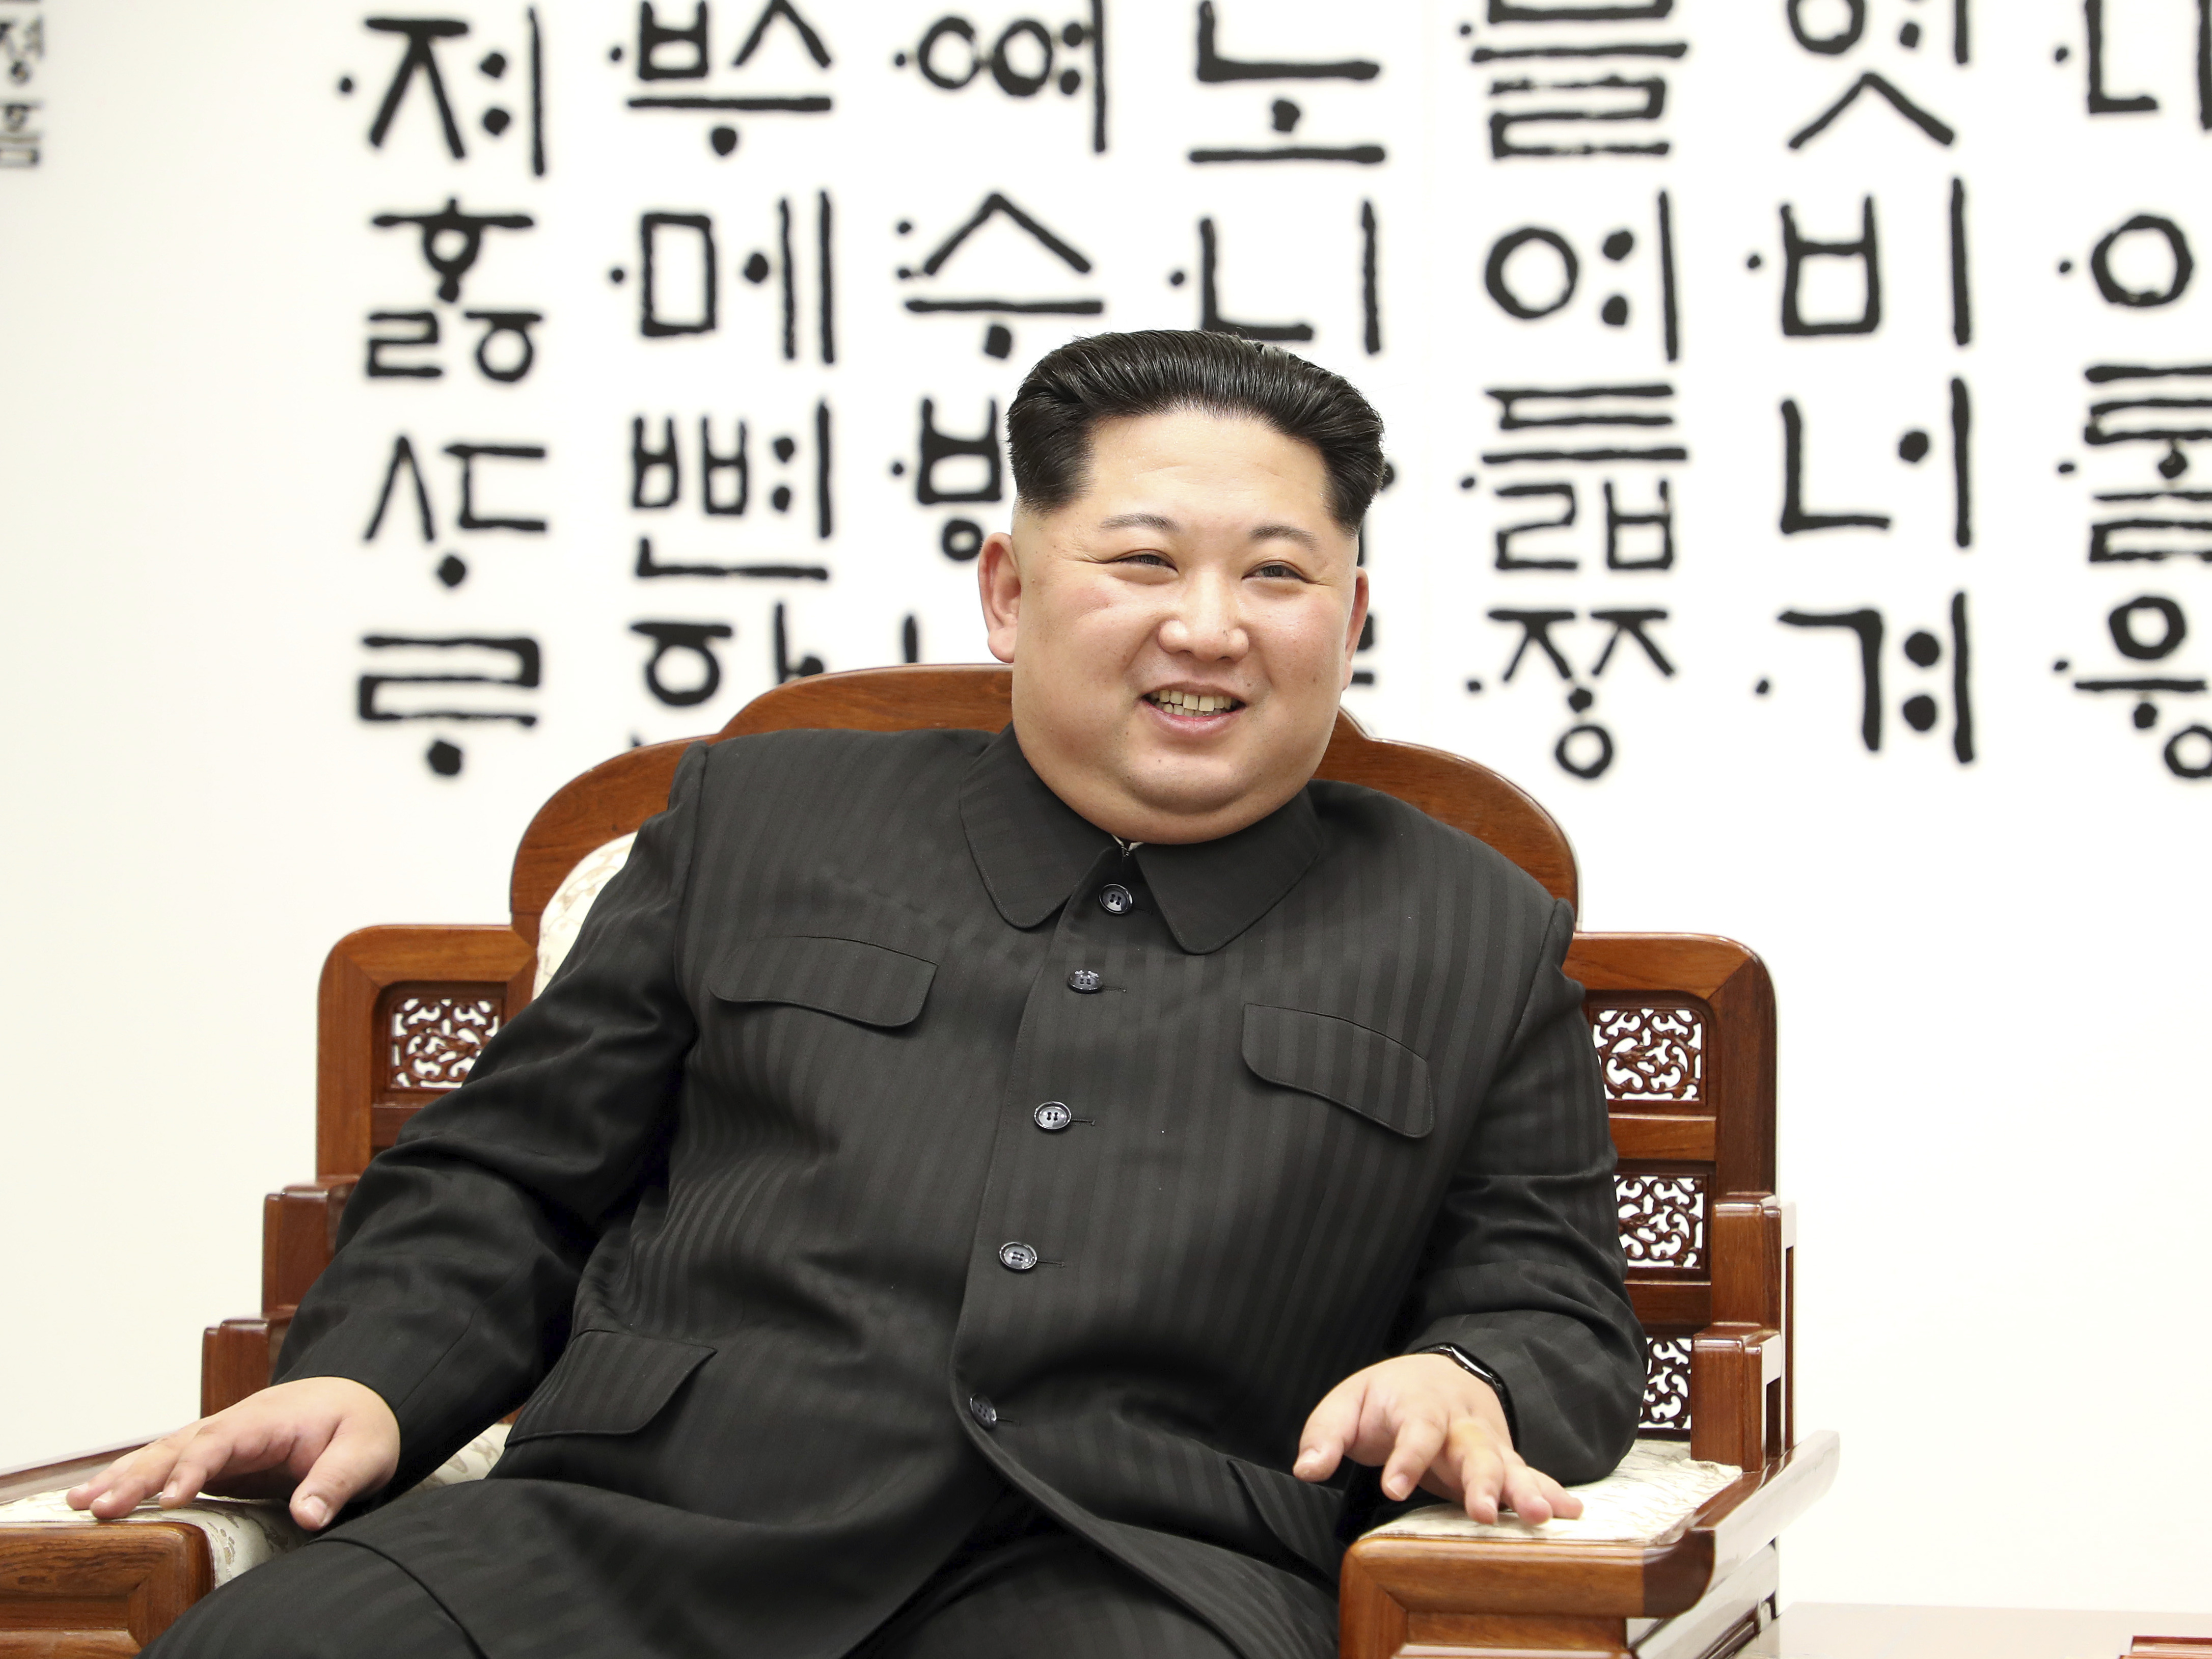 North Korean leader Kim Jong Un is seen at Peace House of the border village of Panmunjom in the Demilitarized Zone, South Korea on April 27.